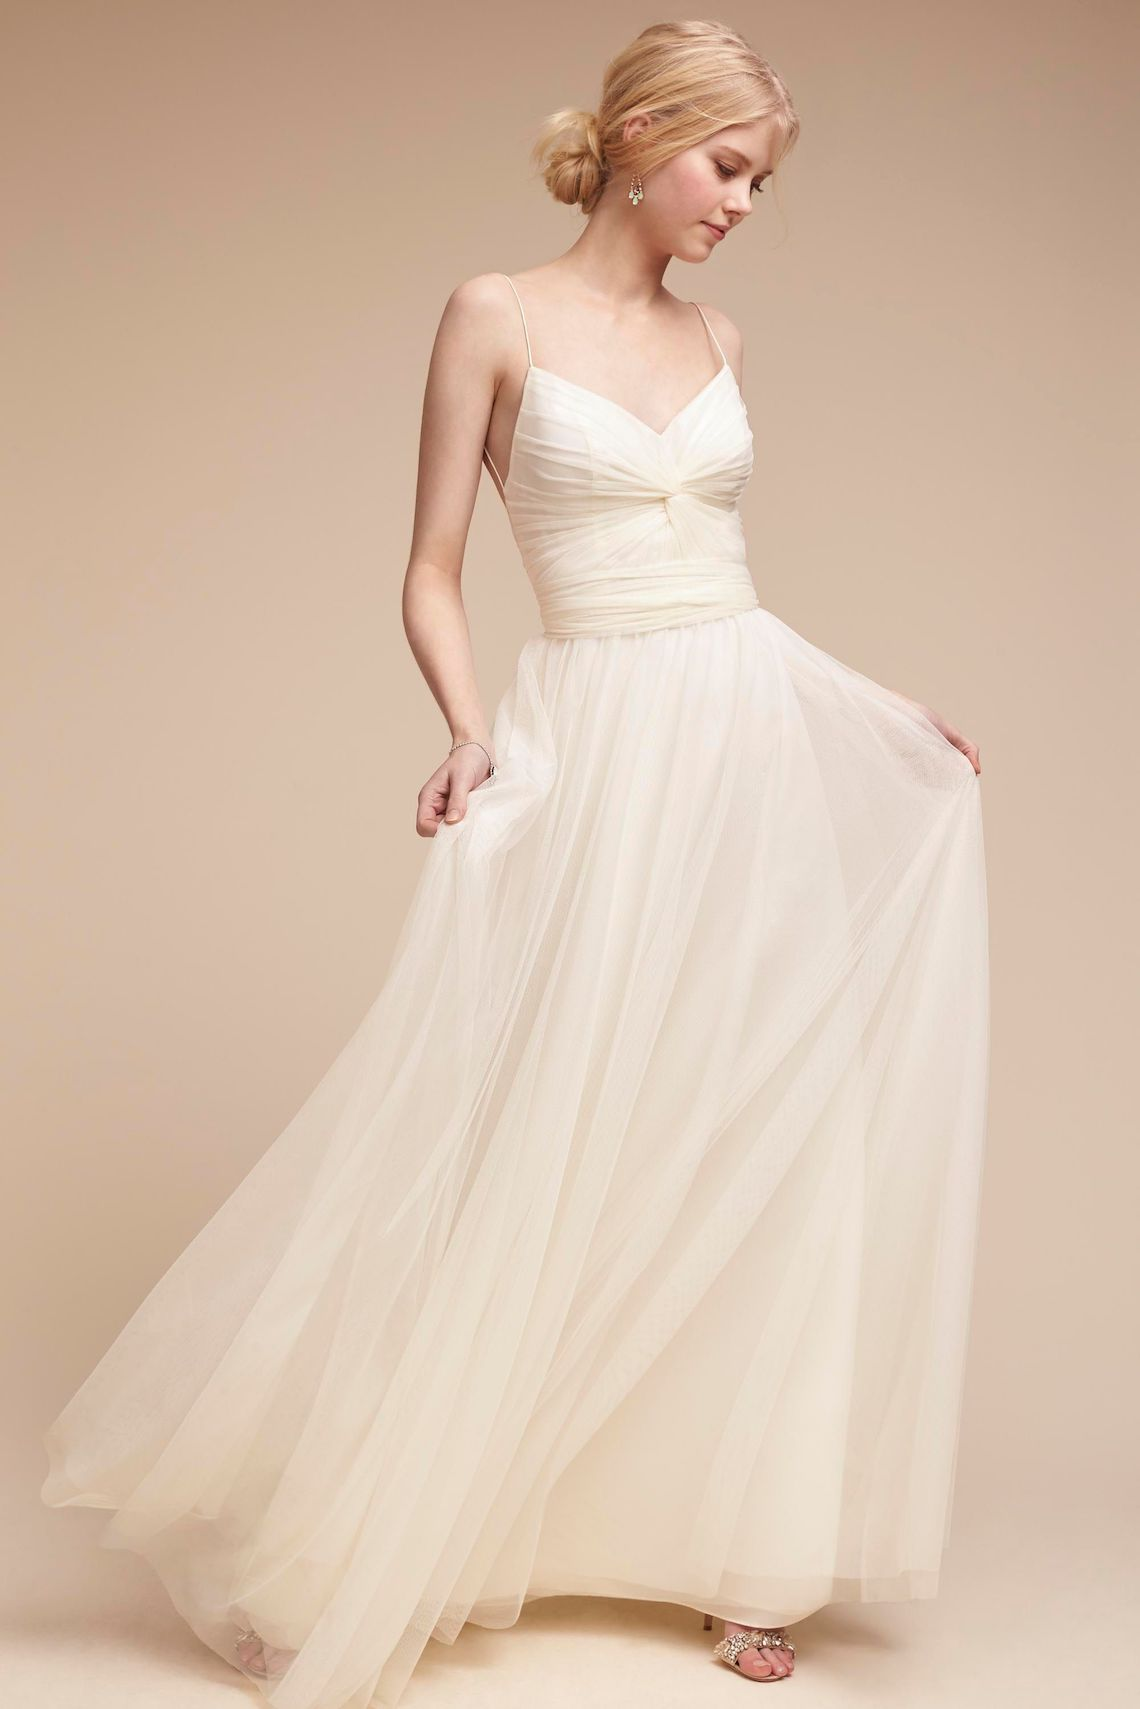 20 Affordable Back Up Wedding Dresses Under 500 Ready To Ship